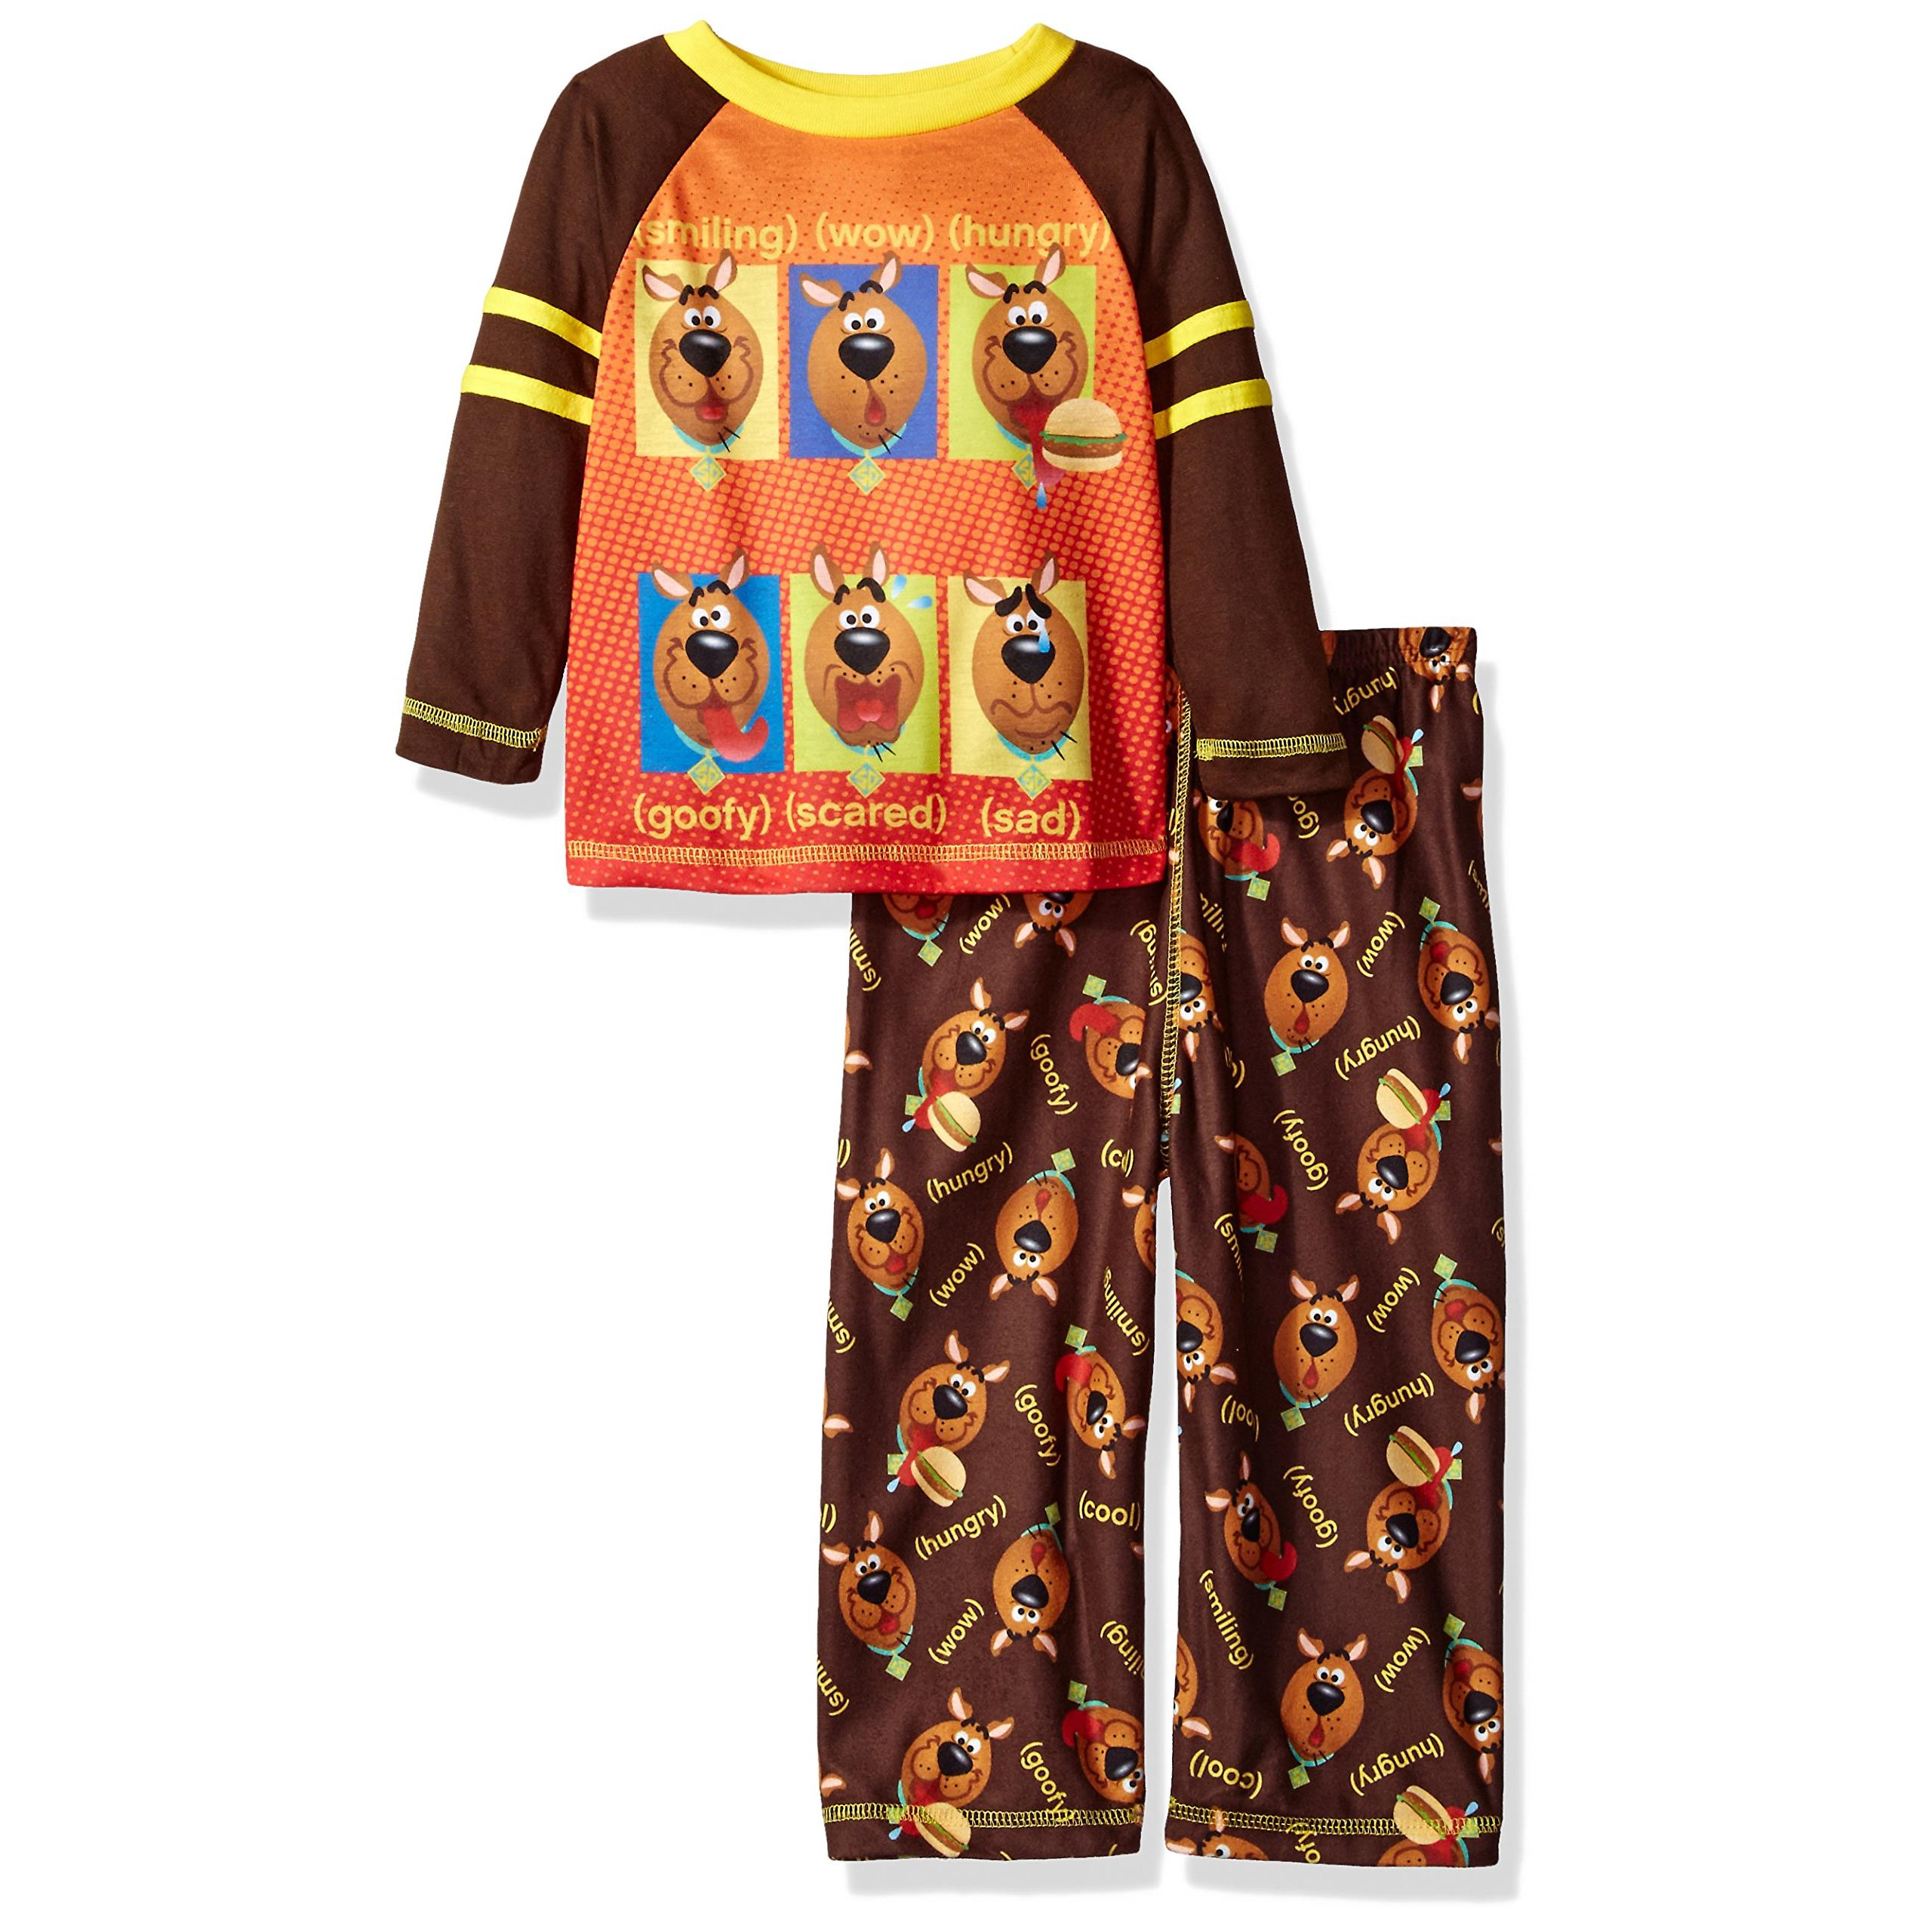 SGI Apparel Little Boys' Scooby Doo 2-Pc Pajama Set, Long Sleeve Top with Pant